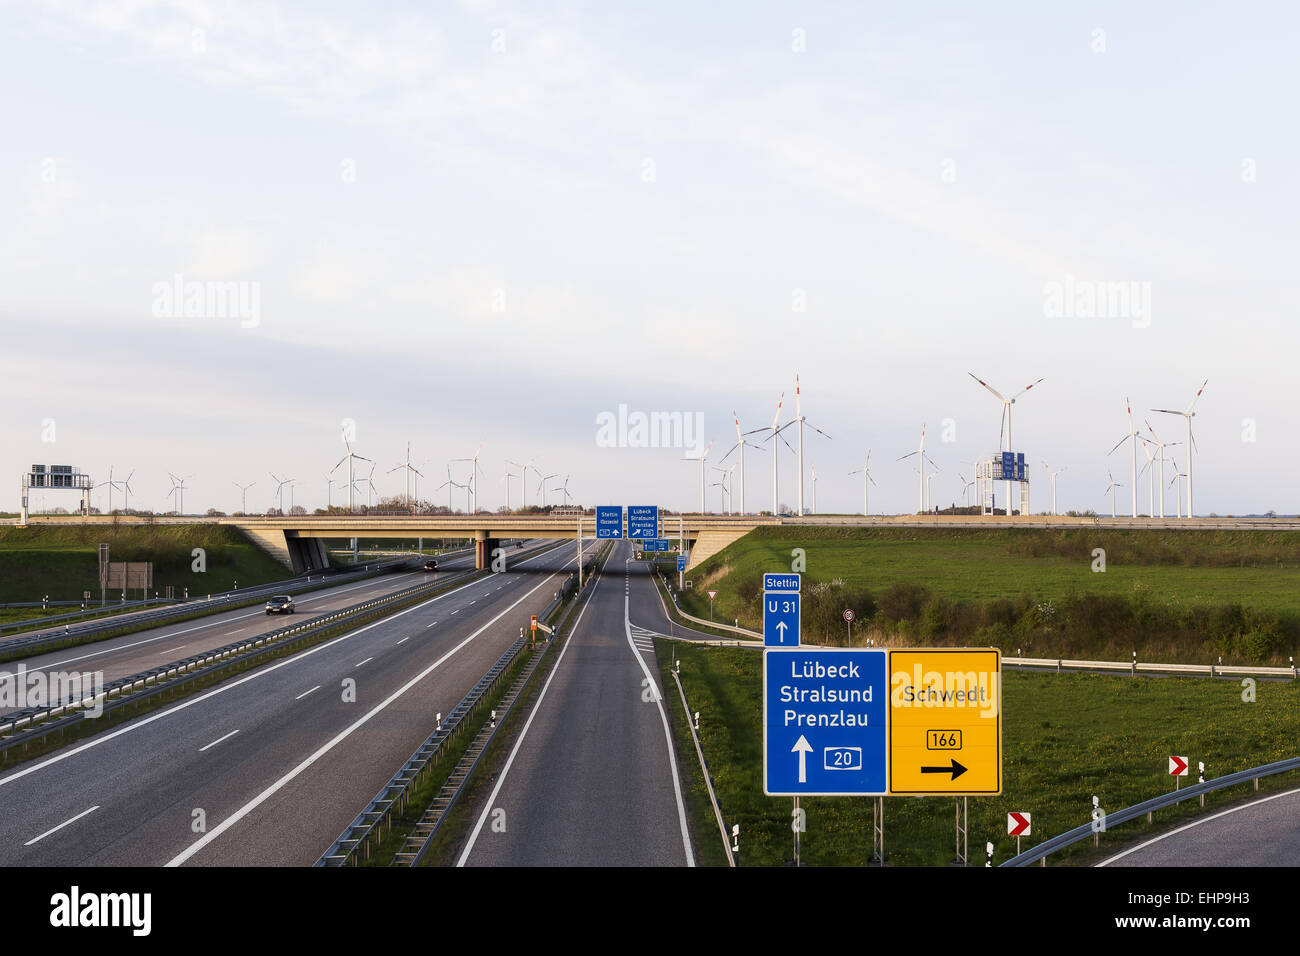 highways crossing - Stock Image